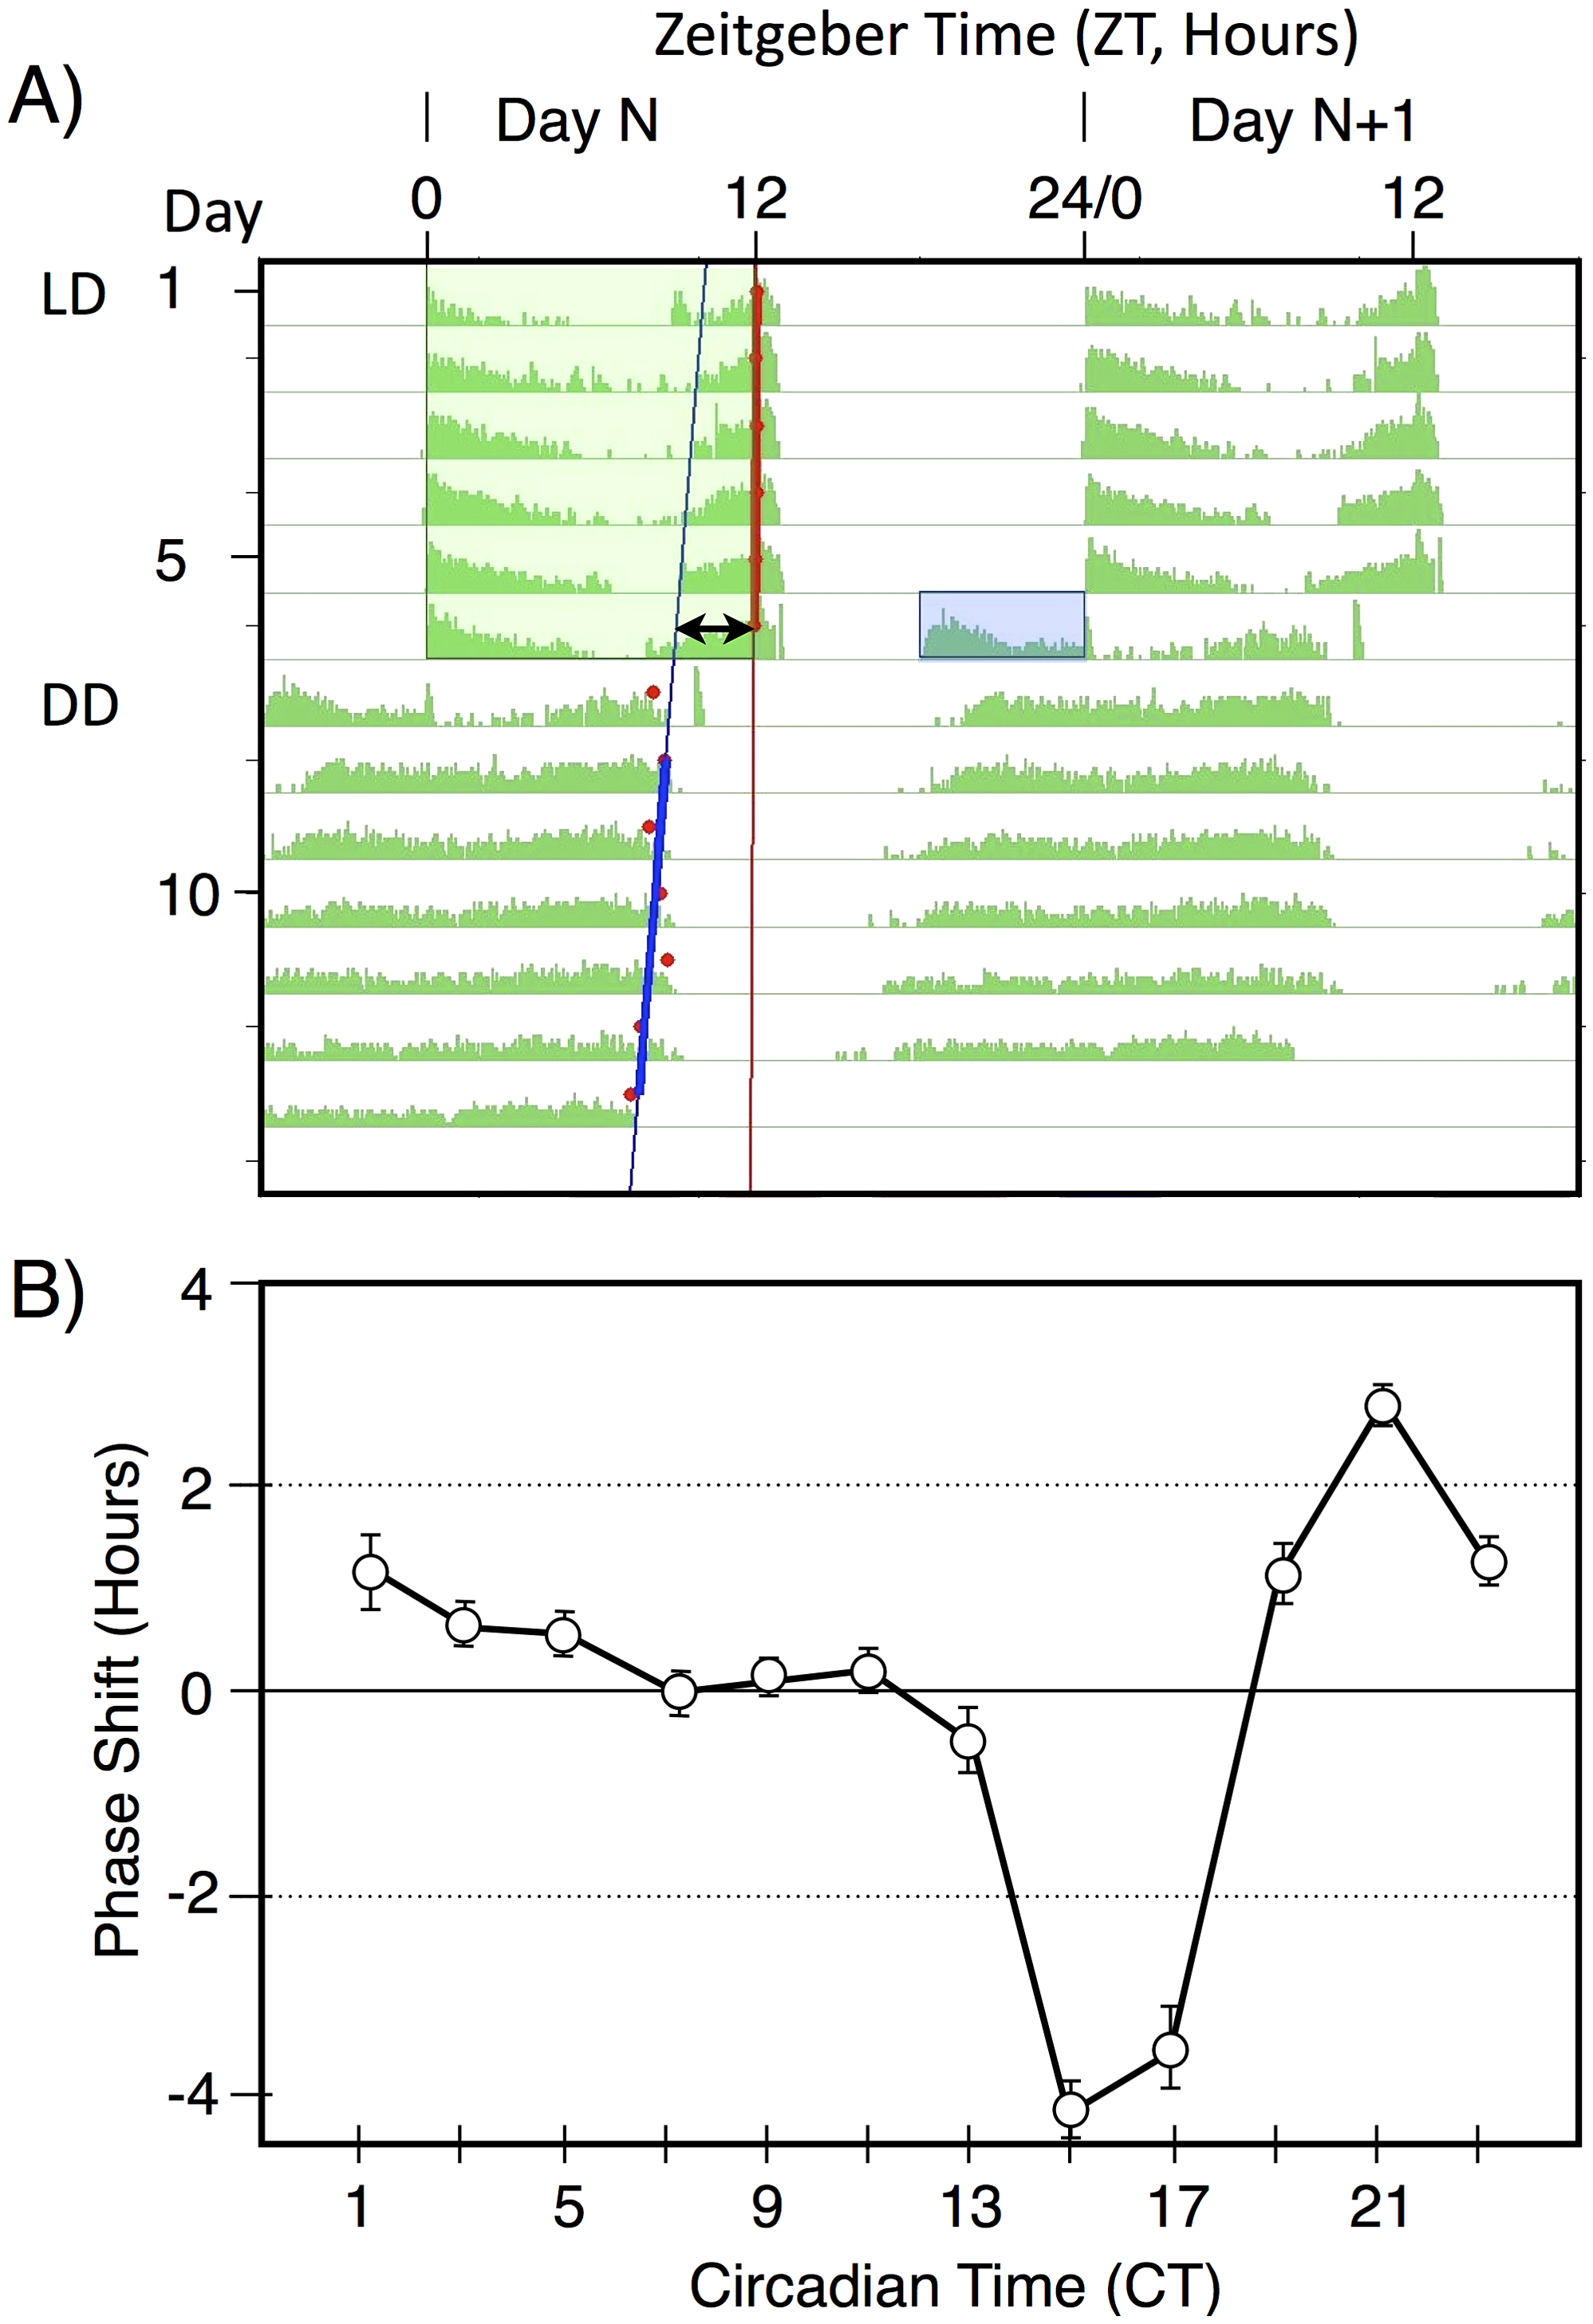 A double-plotted median actogram illustrating the basic paradigm used in this manuscript (A), and a Phase Response Curve (B).